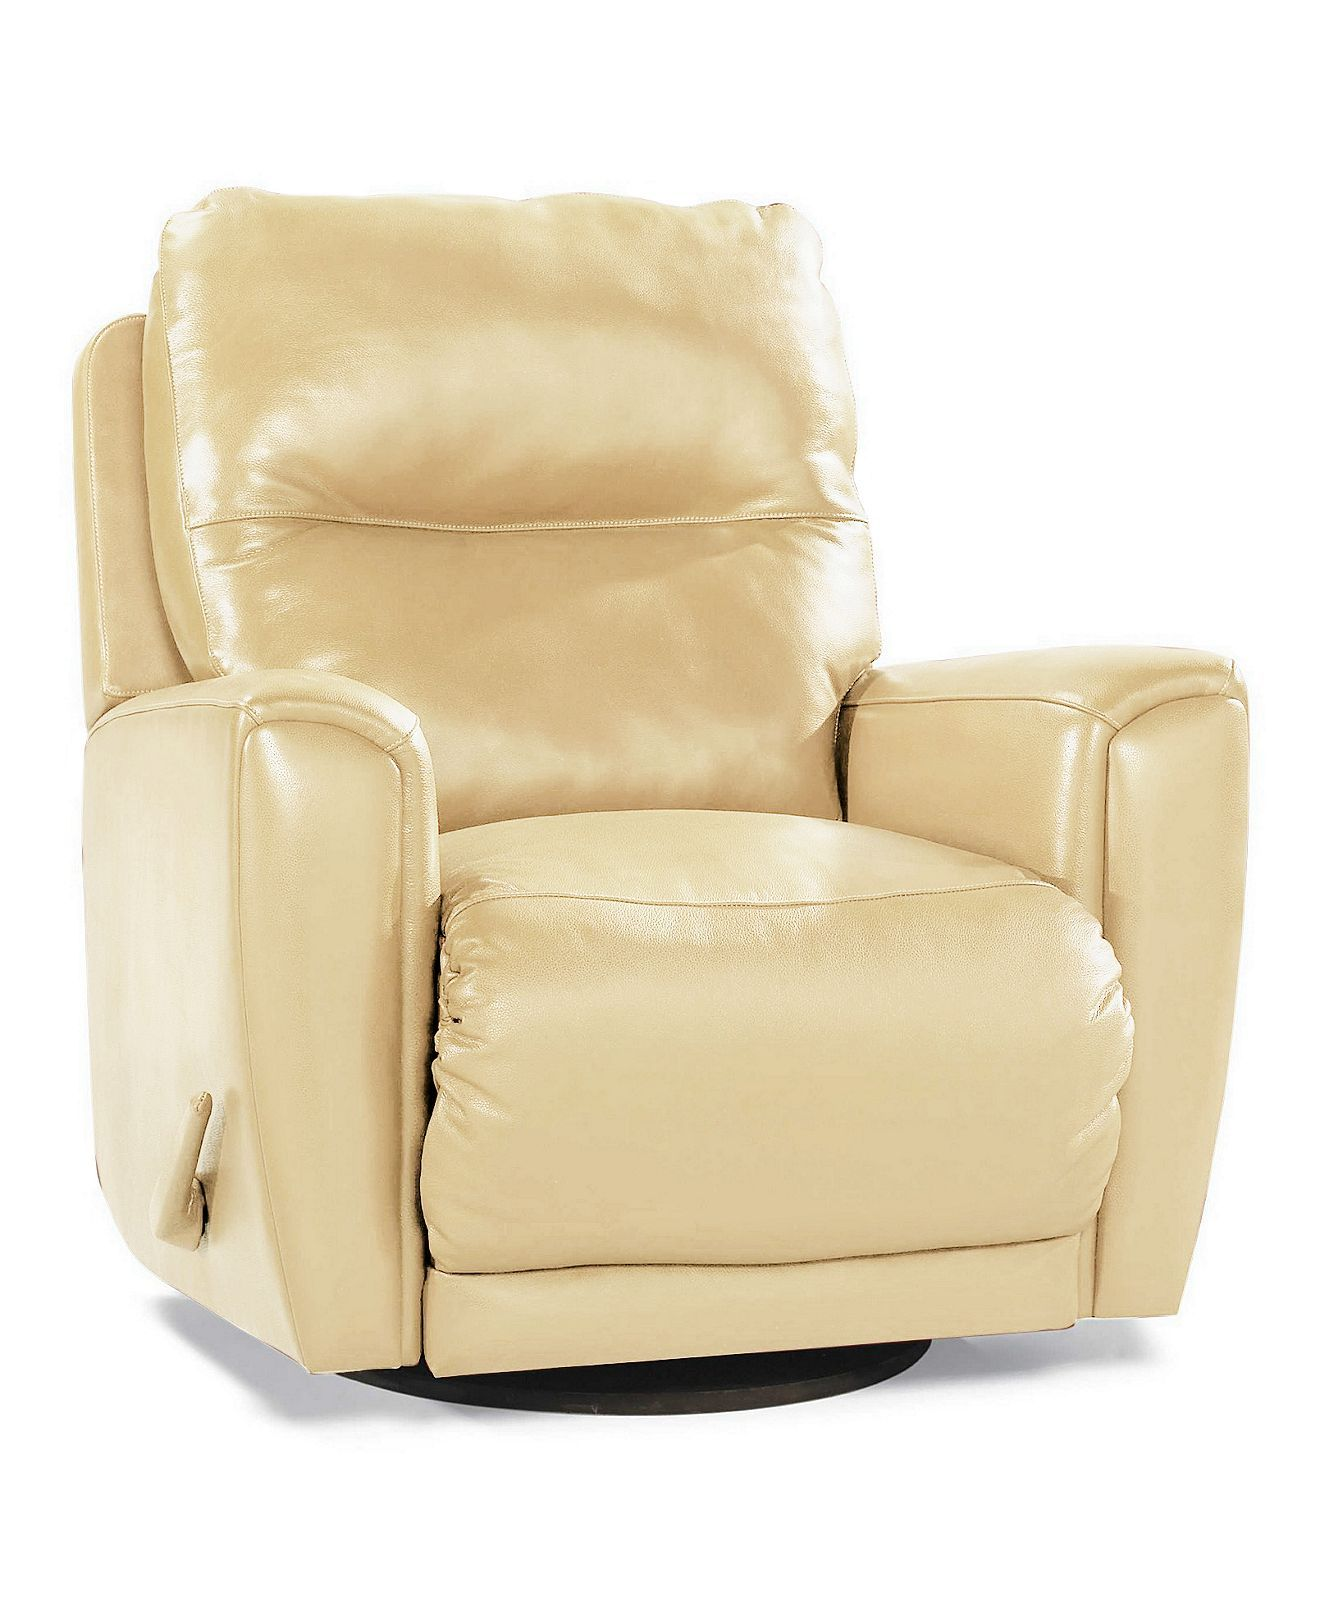 Havana Recliner Chair Swivel Glider Chairs & Recliners